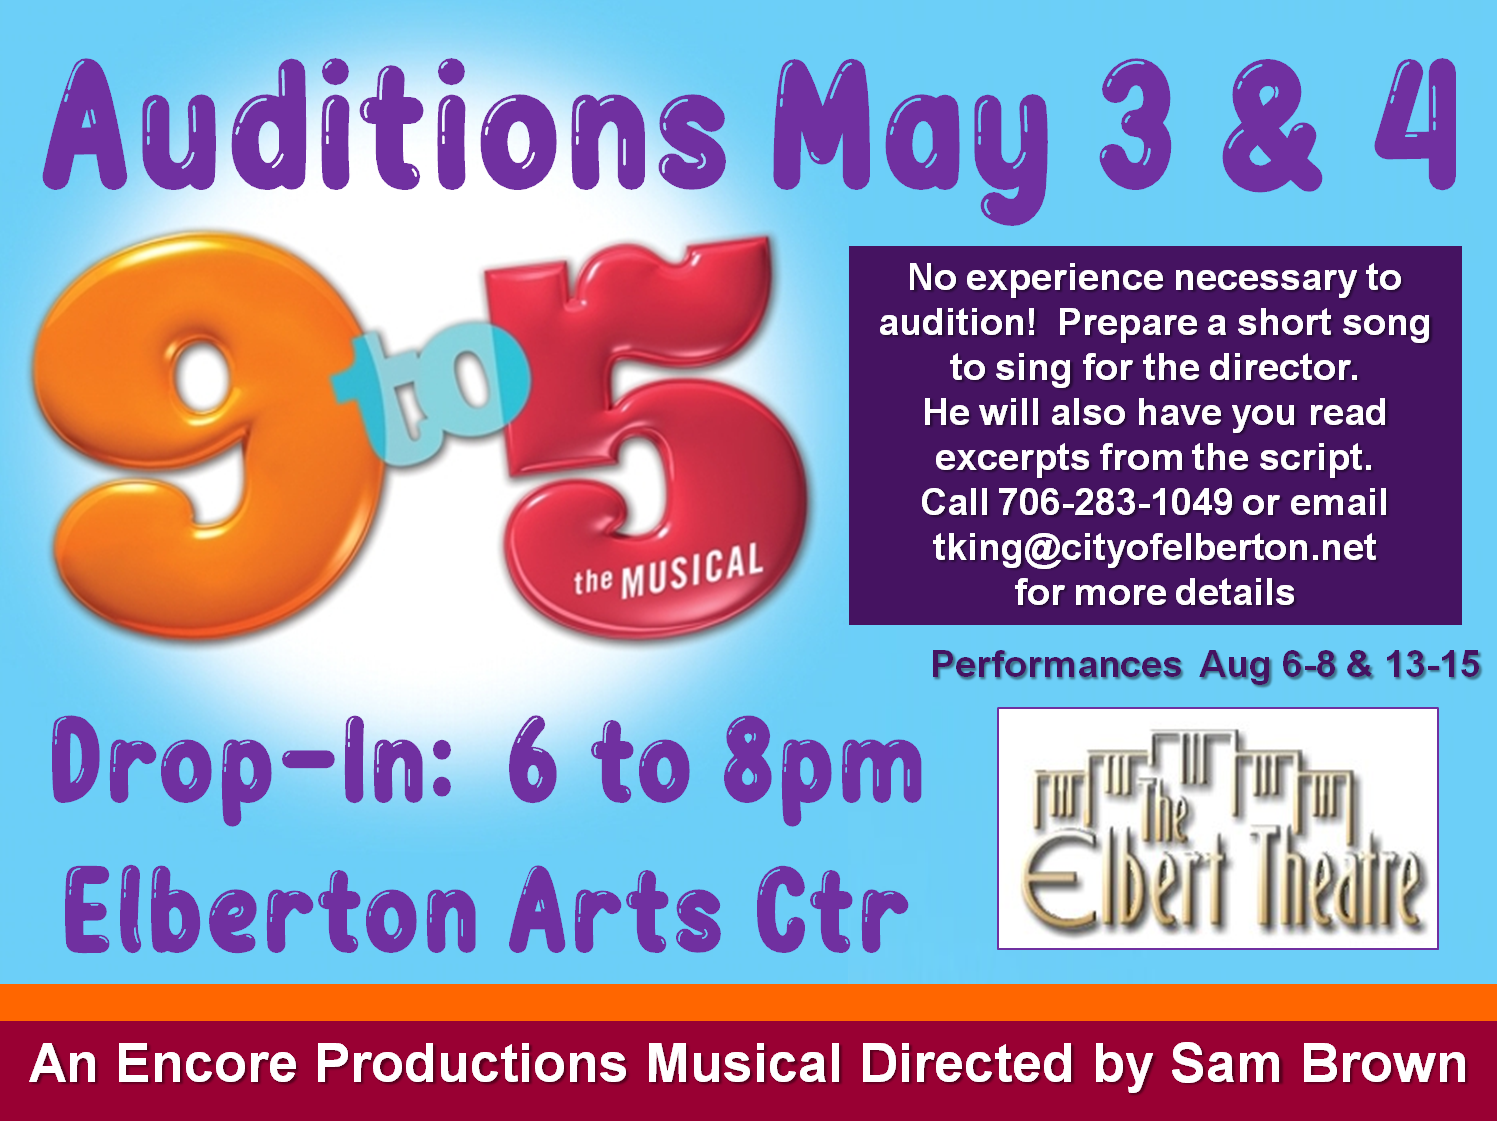 9 to 5 Auditions